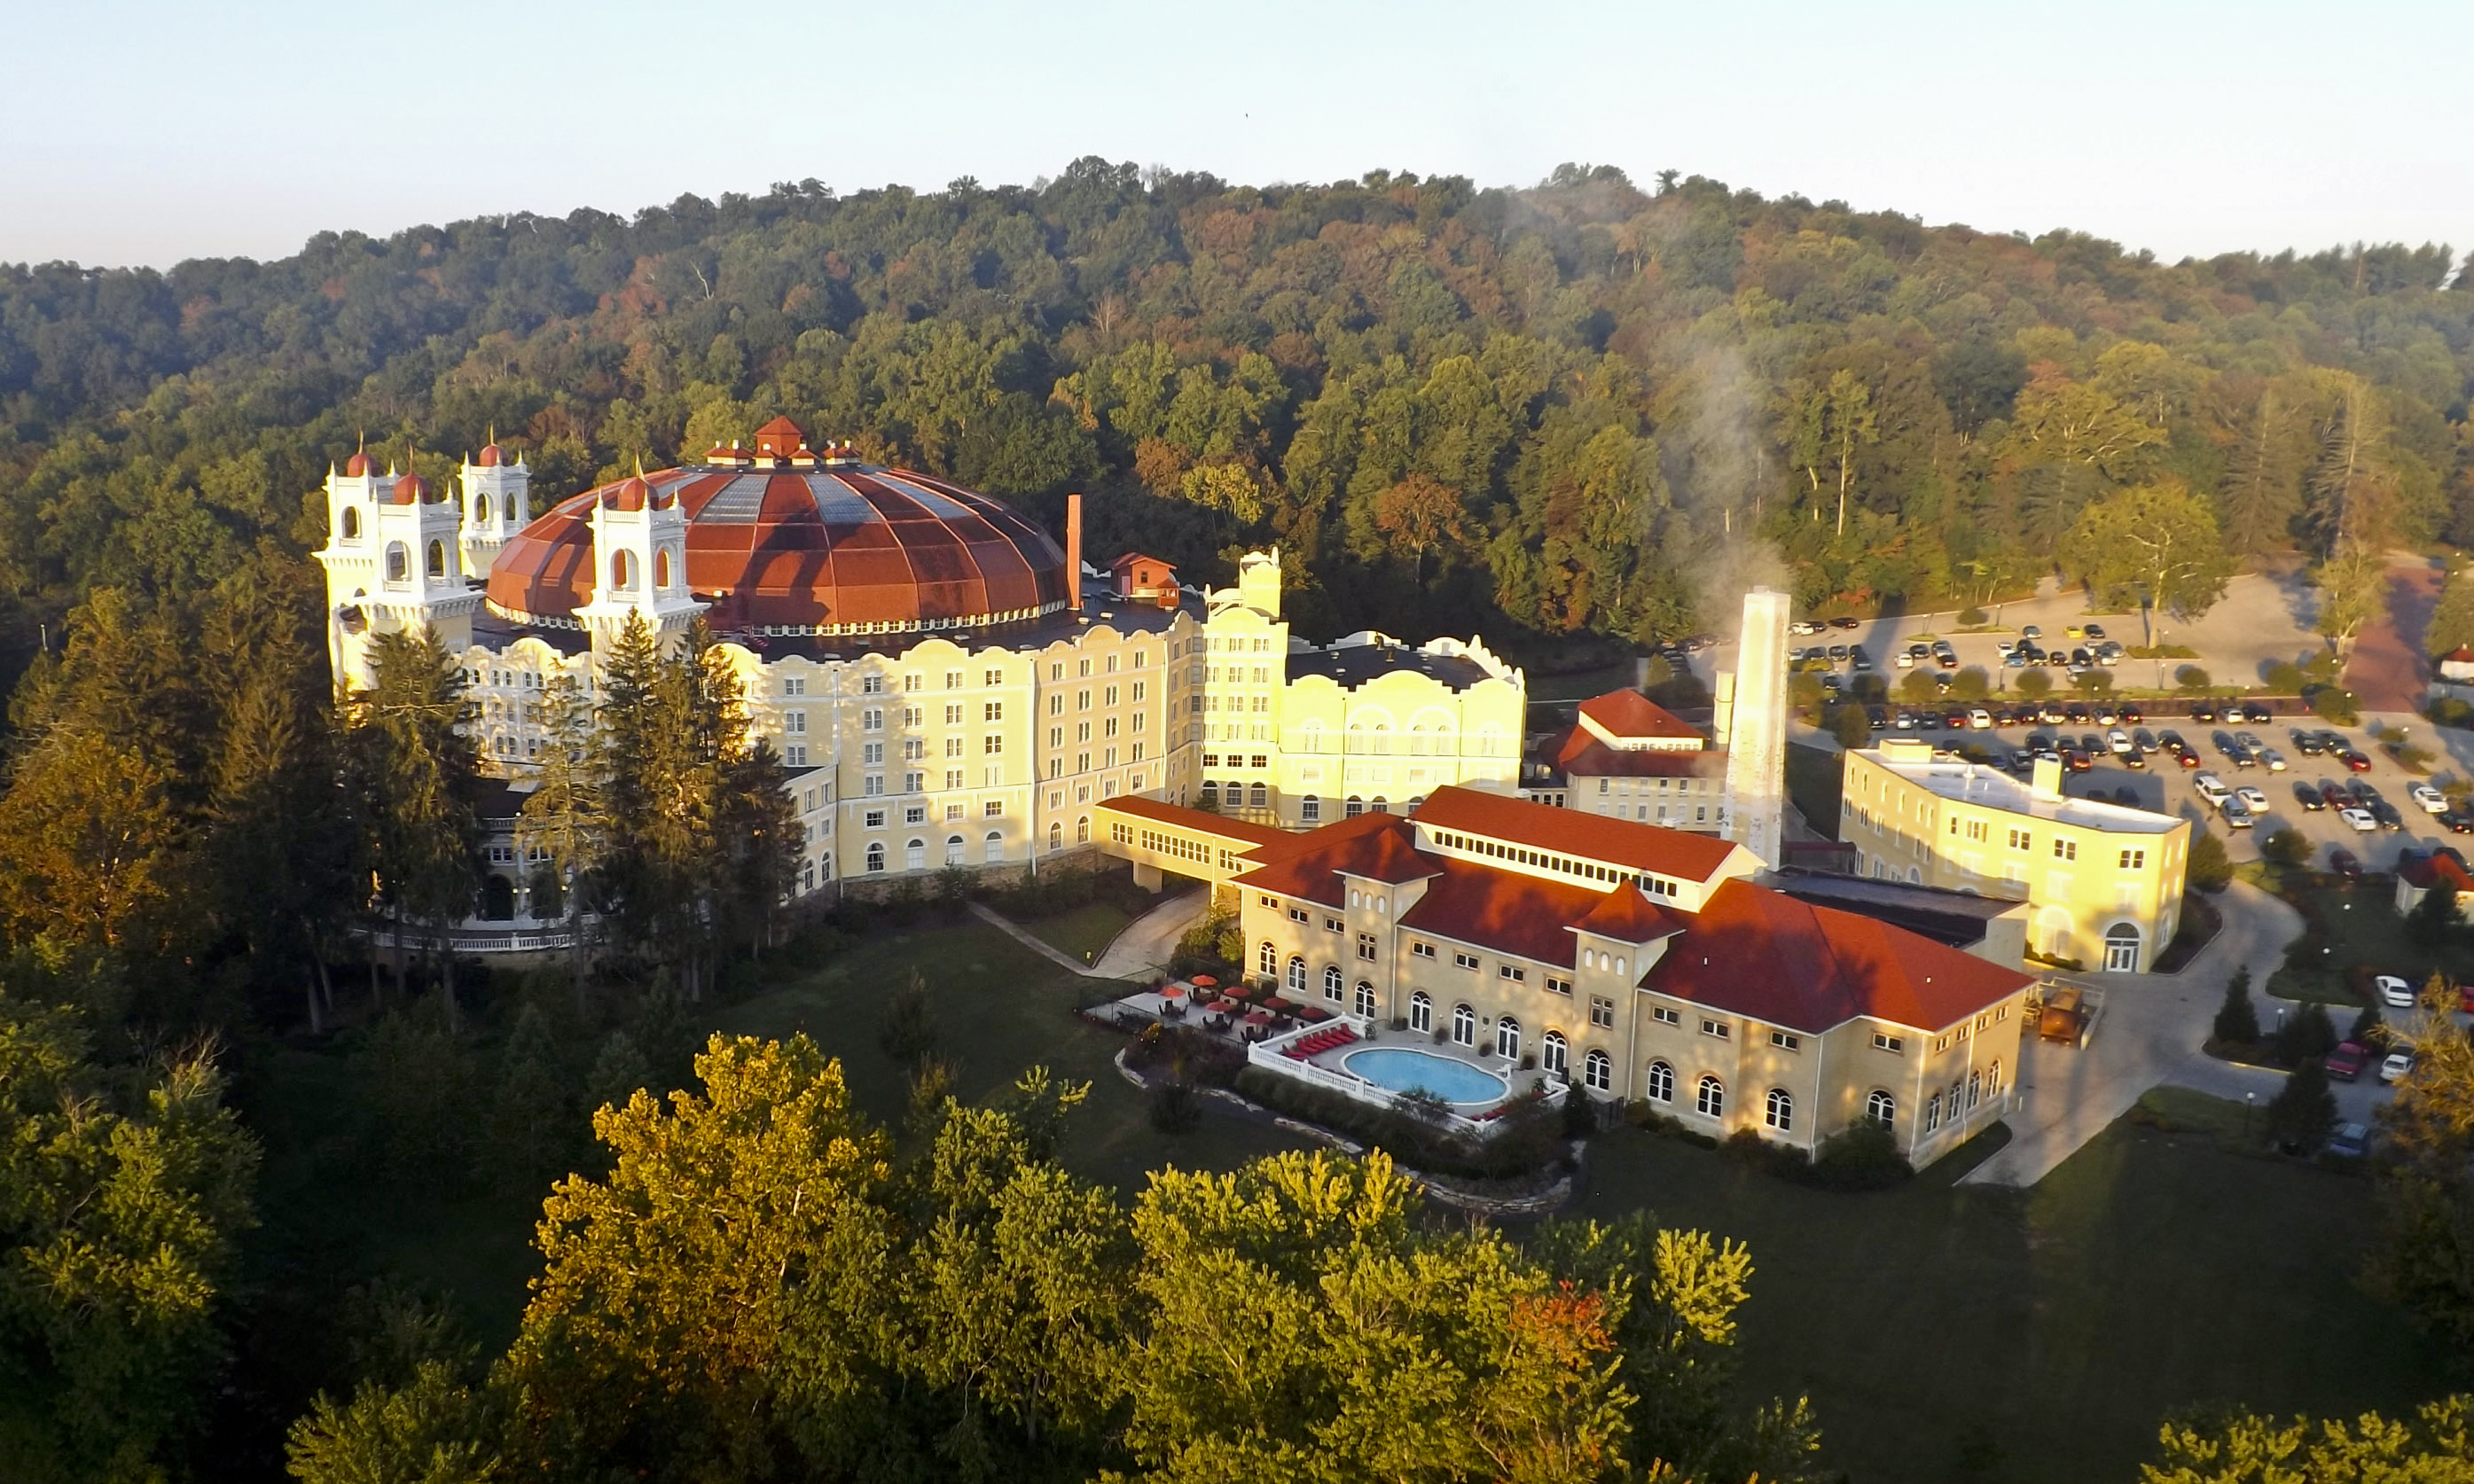 west baden springs gay dating site Book now for our 100% lowest price guarantee and save up to $99 on over 17 west baden springs lgbtfriendly hotels find the top hotels with no cancelation fees at travelocity.